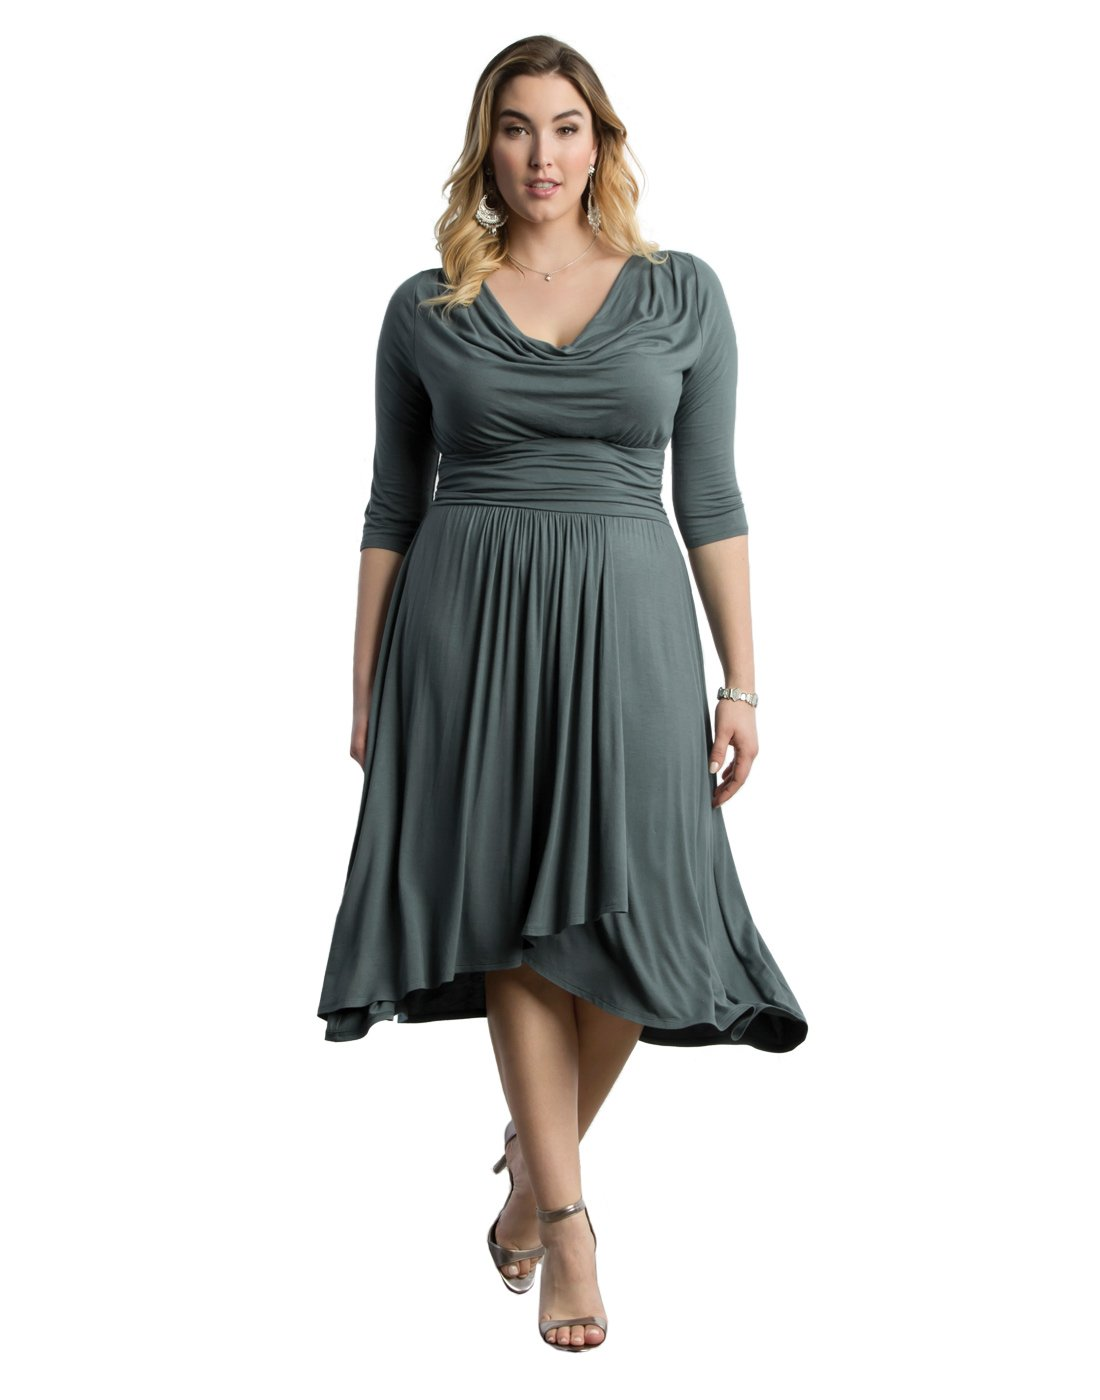 Kiyonna Women's Plus Size Draped In Class 2X Sea Glass Teal